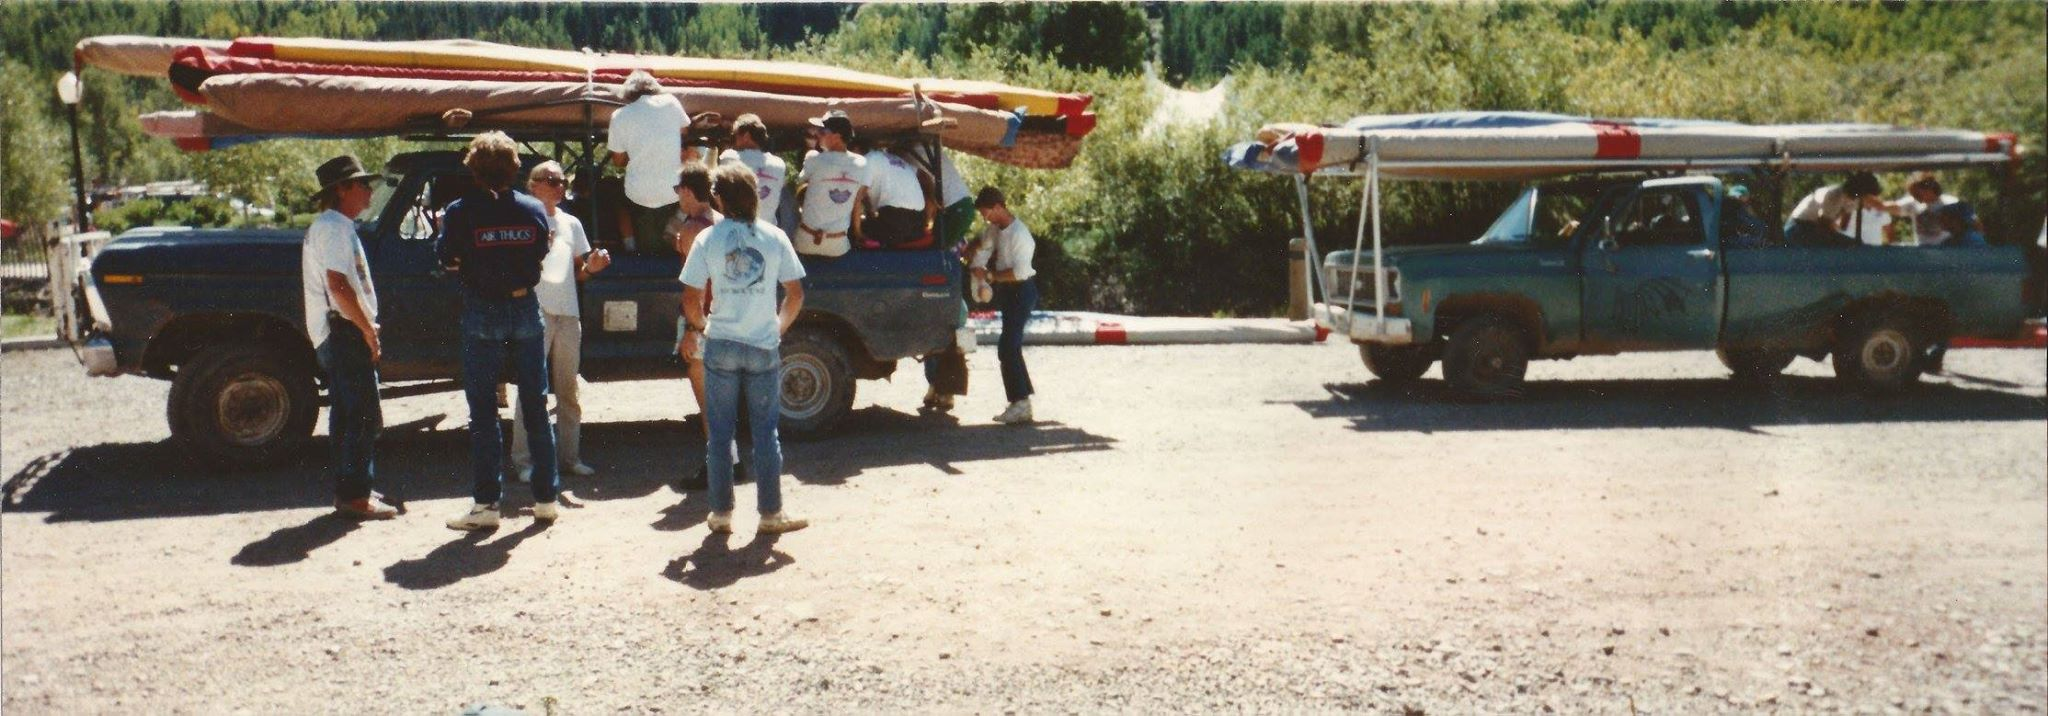 Loading up on Bumbo's F250 lets go flying 1989.